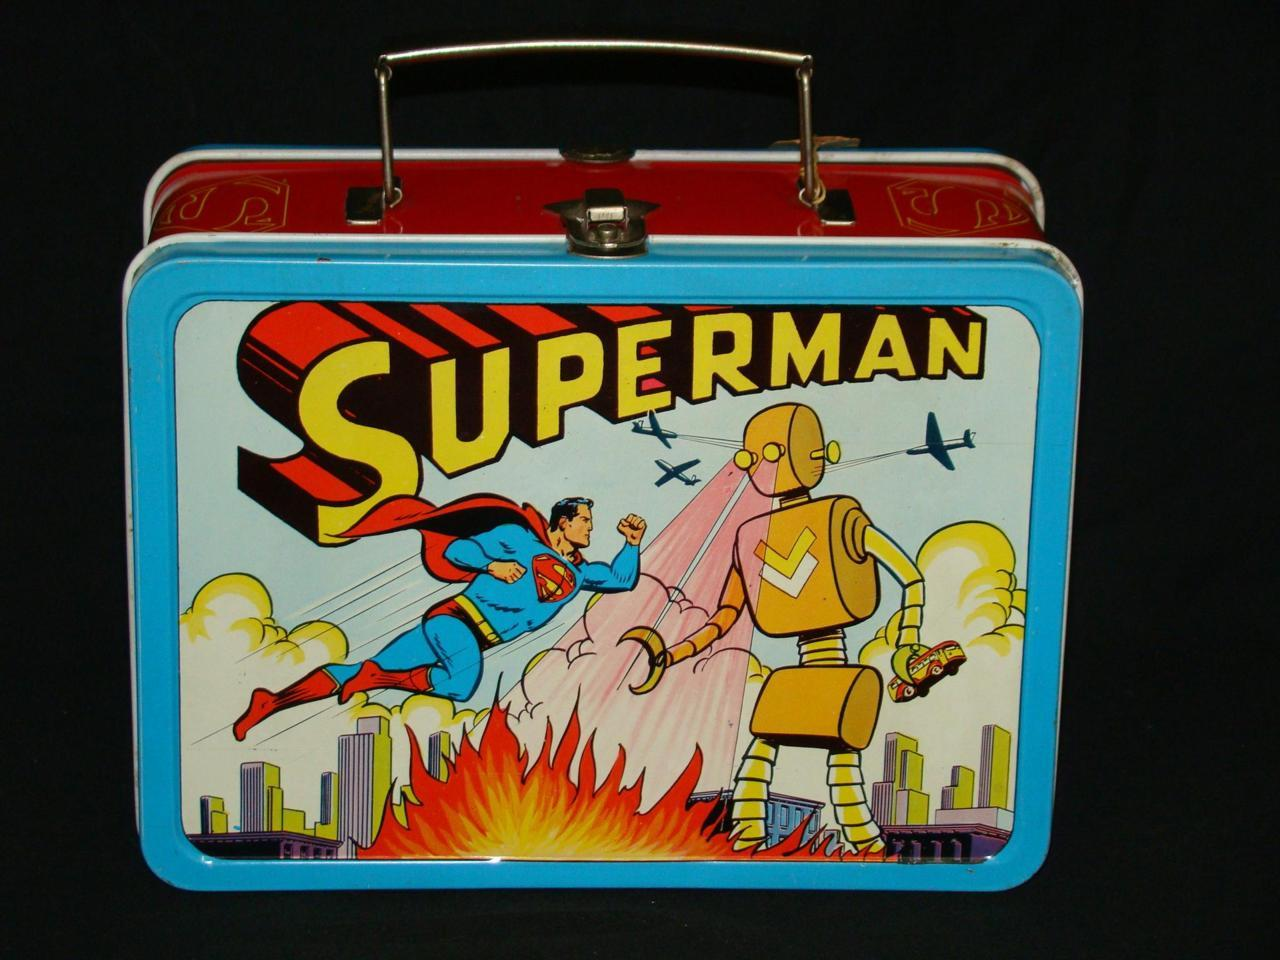 Superman vs Robot lunchbox; 1954Sold for $11,865 at auction.